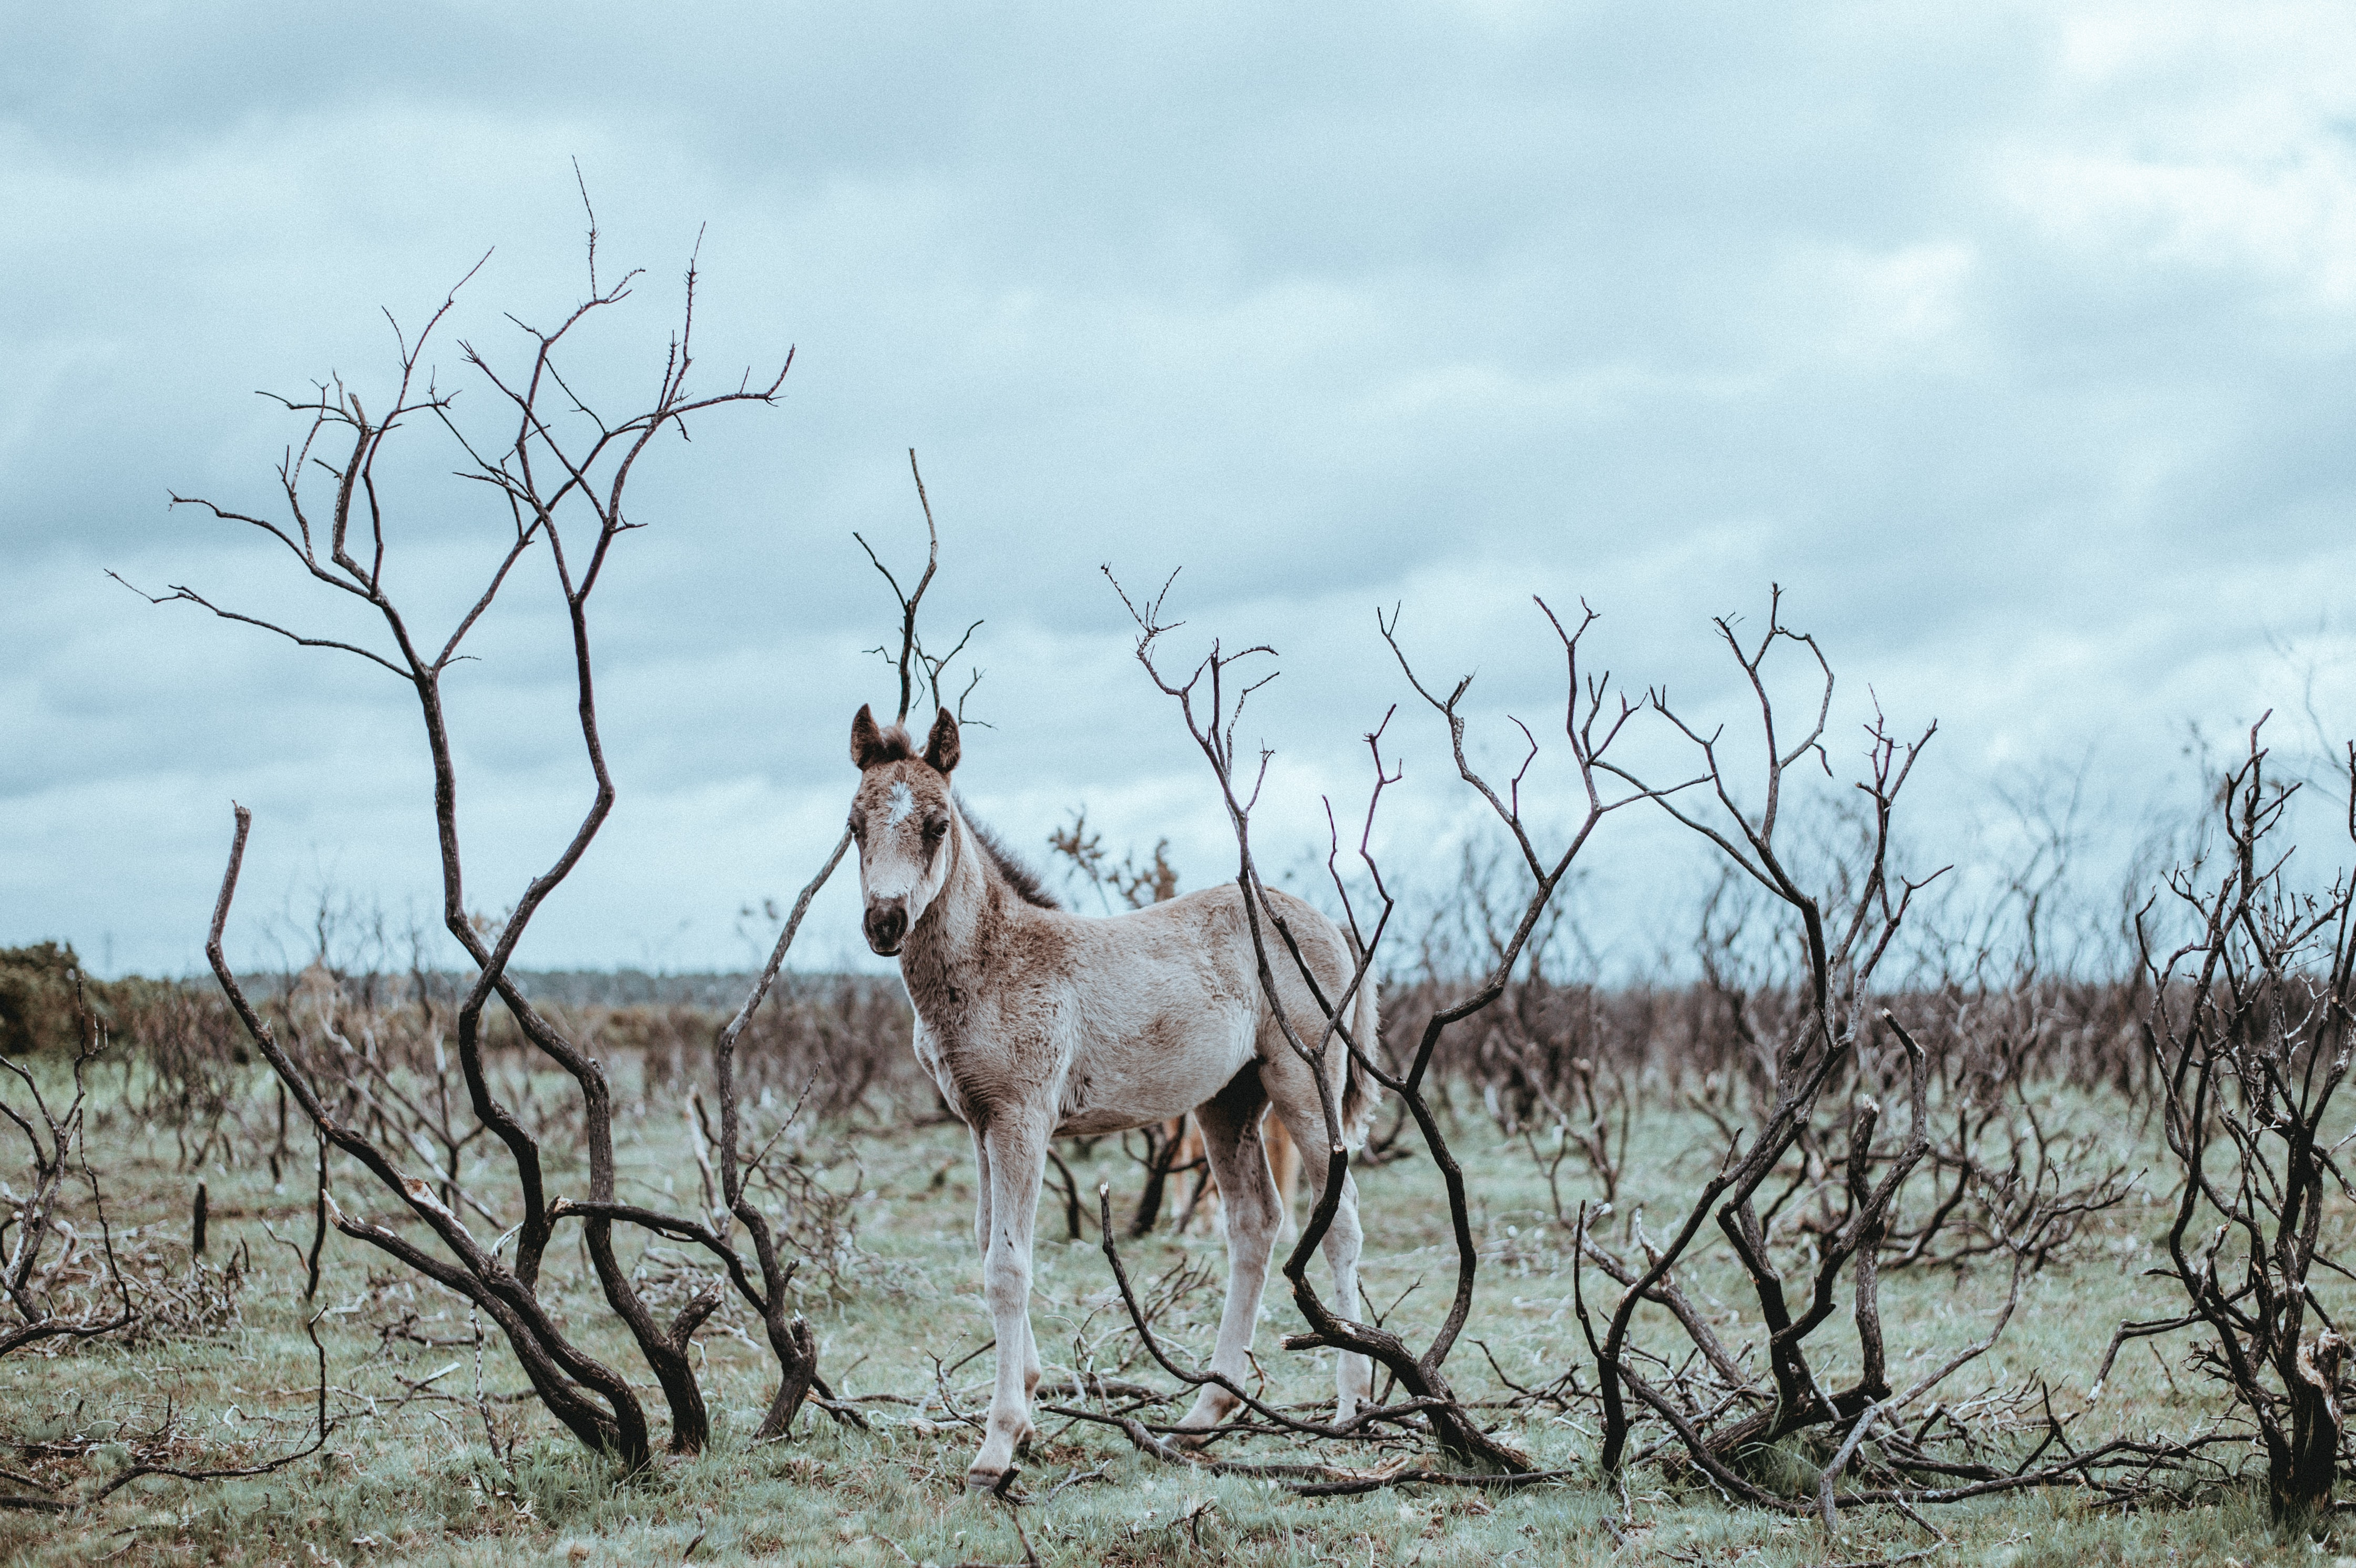 A pony among bare bushes on a cloudy day